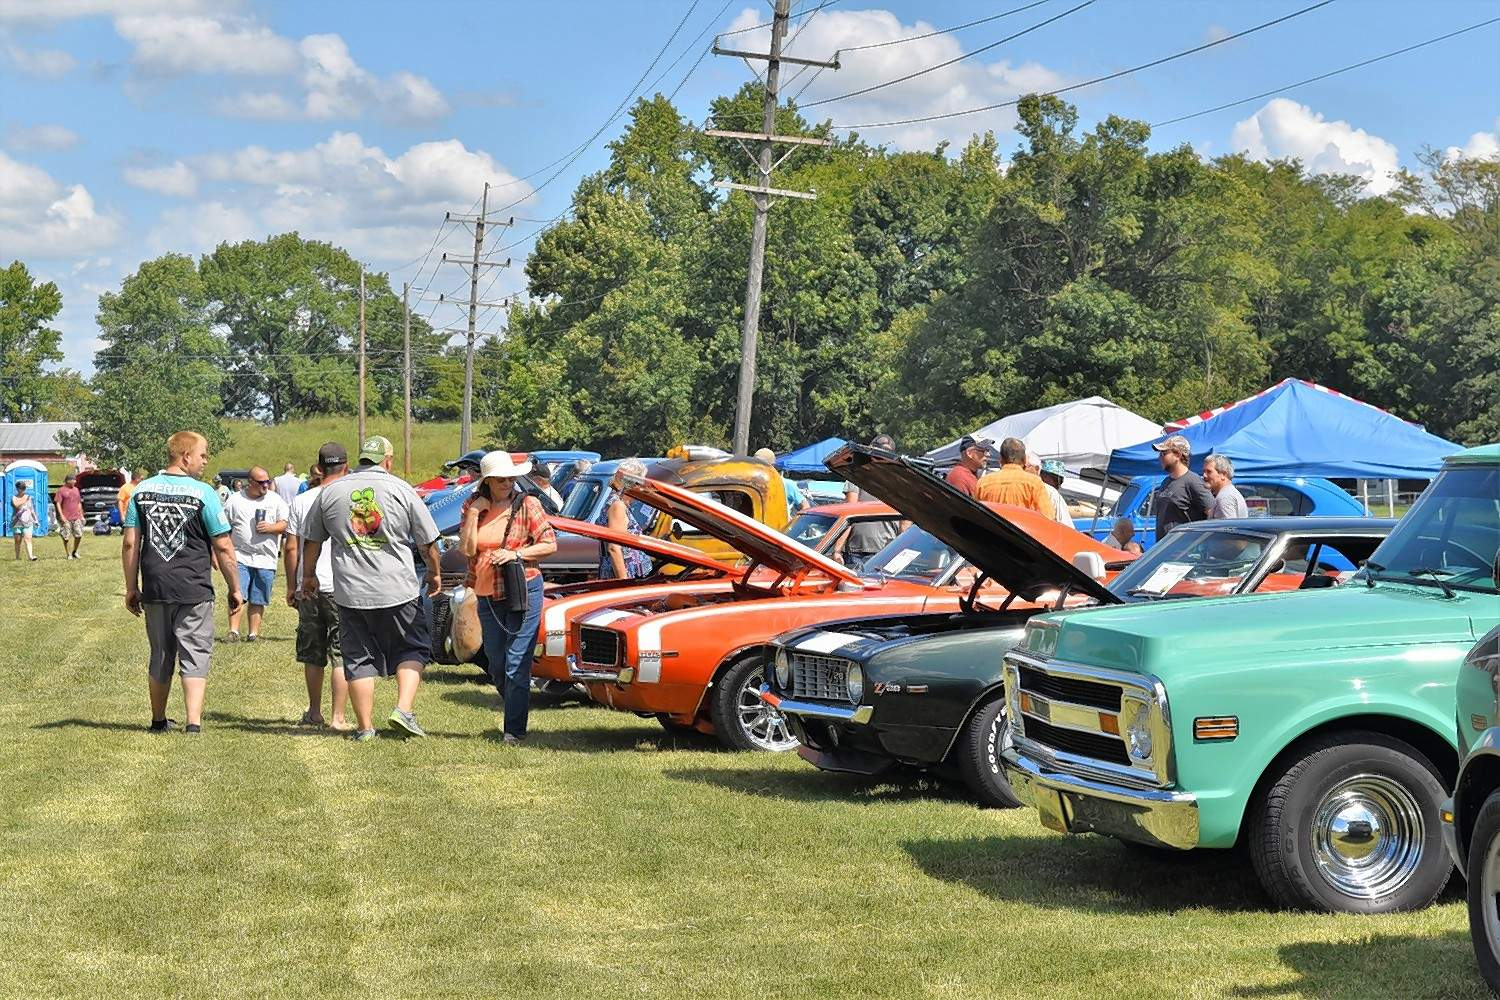 Cars on display at the Eighth Annual Memory Lane Autofest filled the Saline County Fairground Monday.